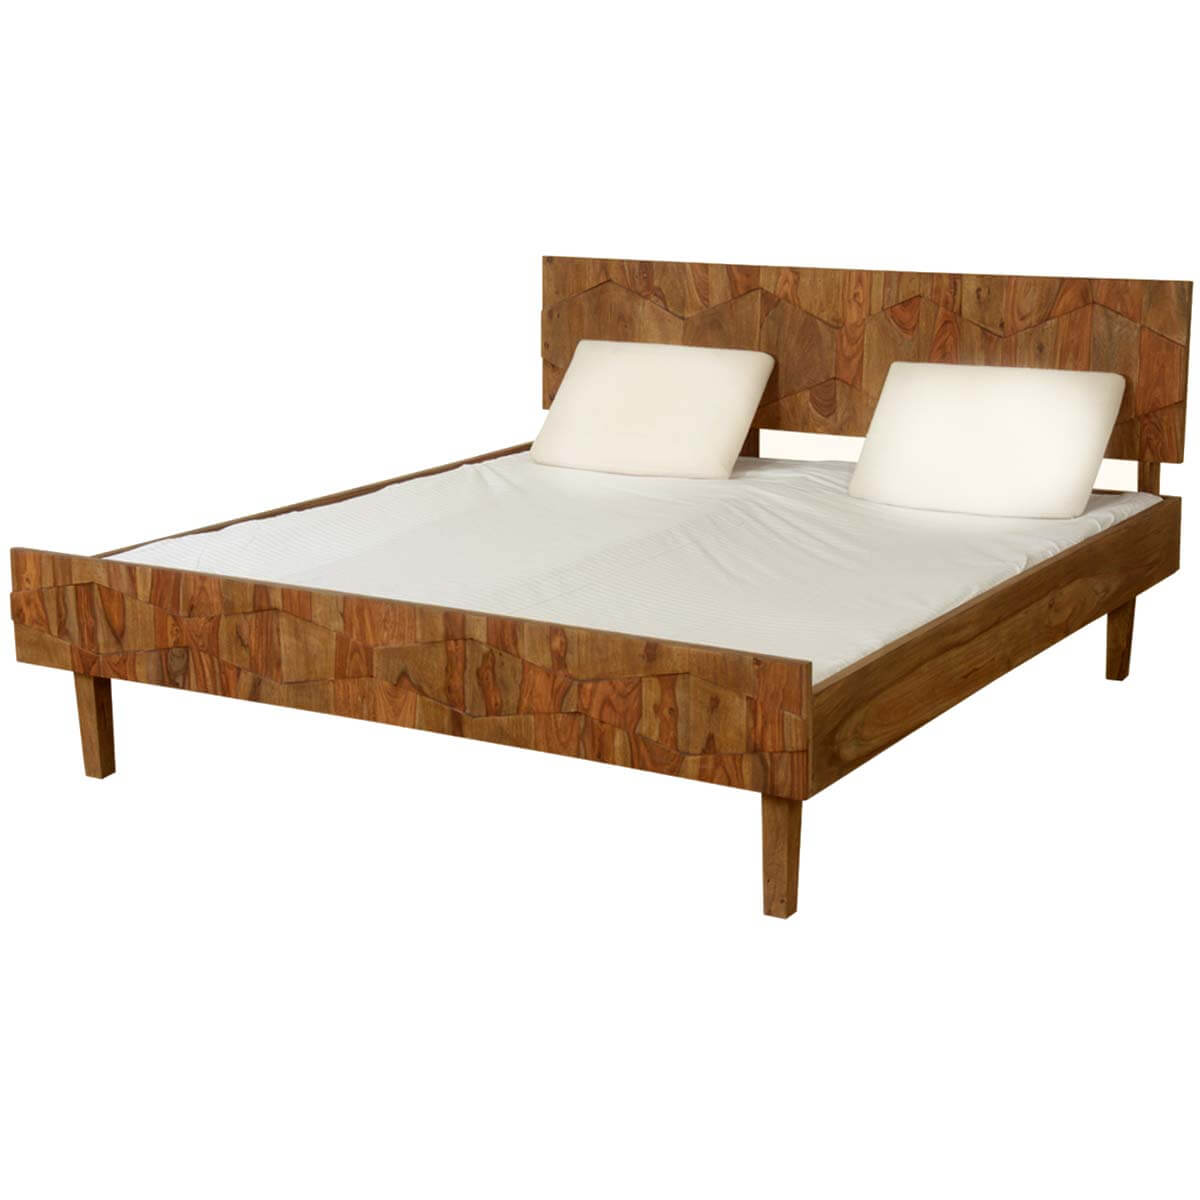 Solid wood platform beds Wood platform bed